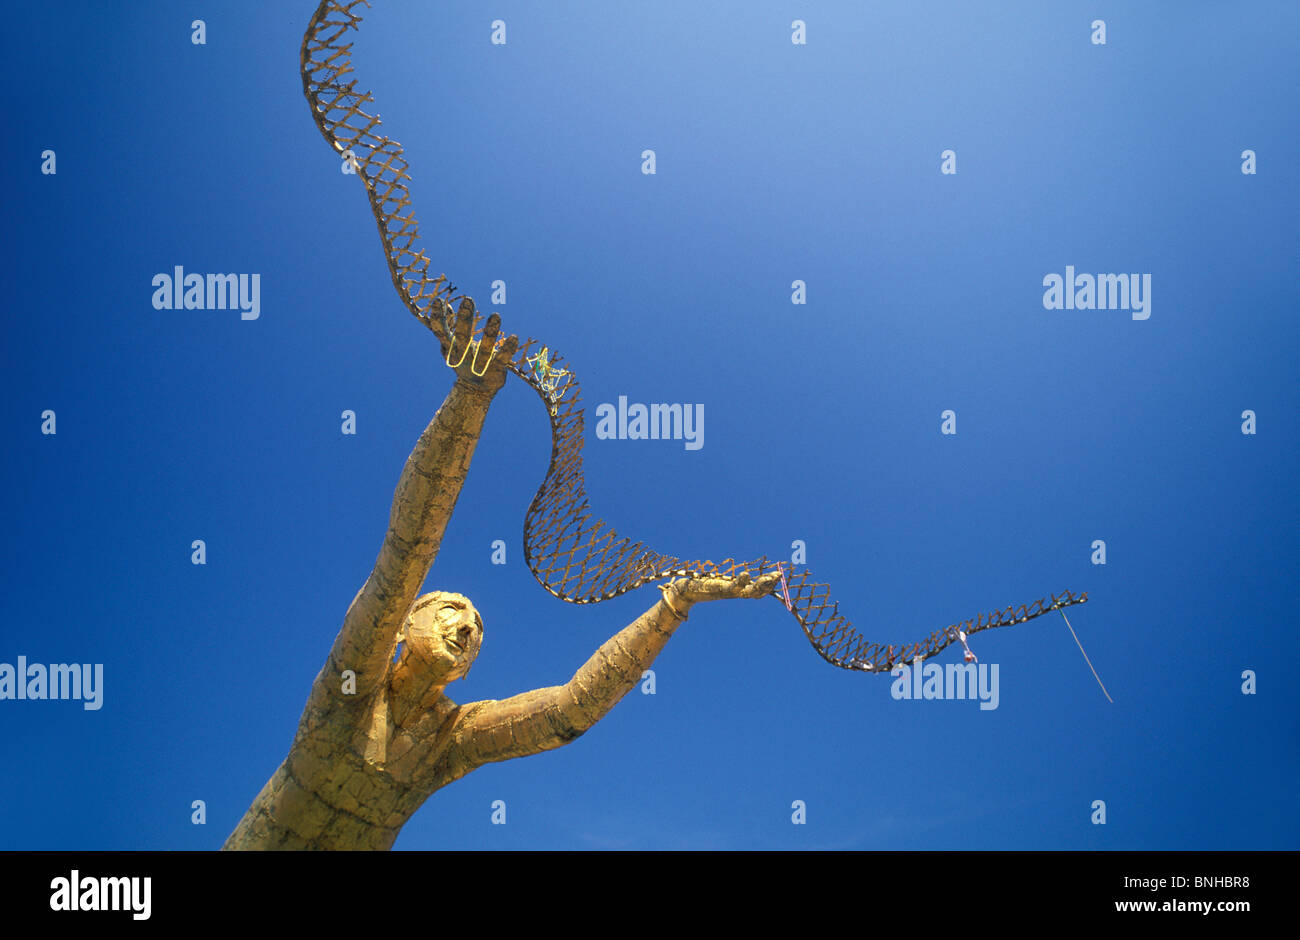 Usa Biloxi Mississippi Golden Fisherman Fisher Fishery Art Culture Blue Sky Sculpture Statue Net United States of Stock Photo